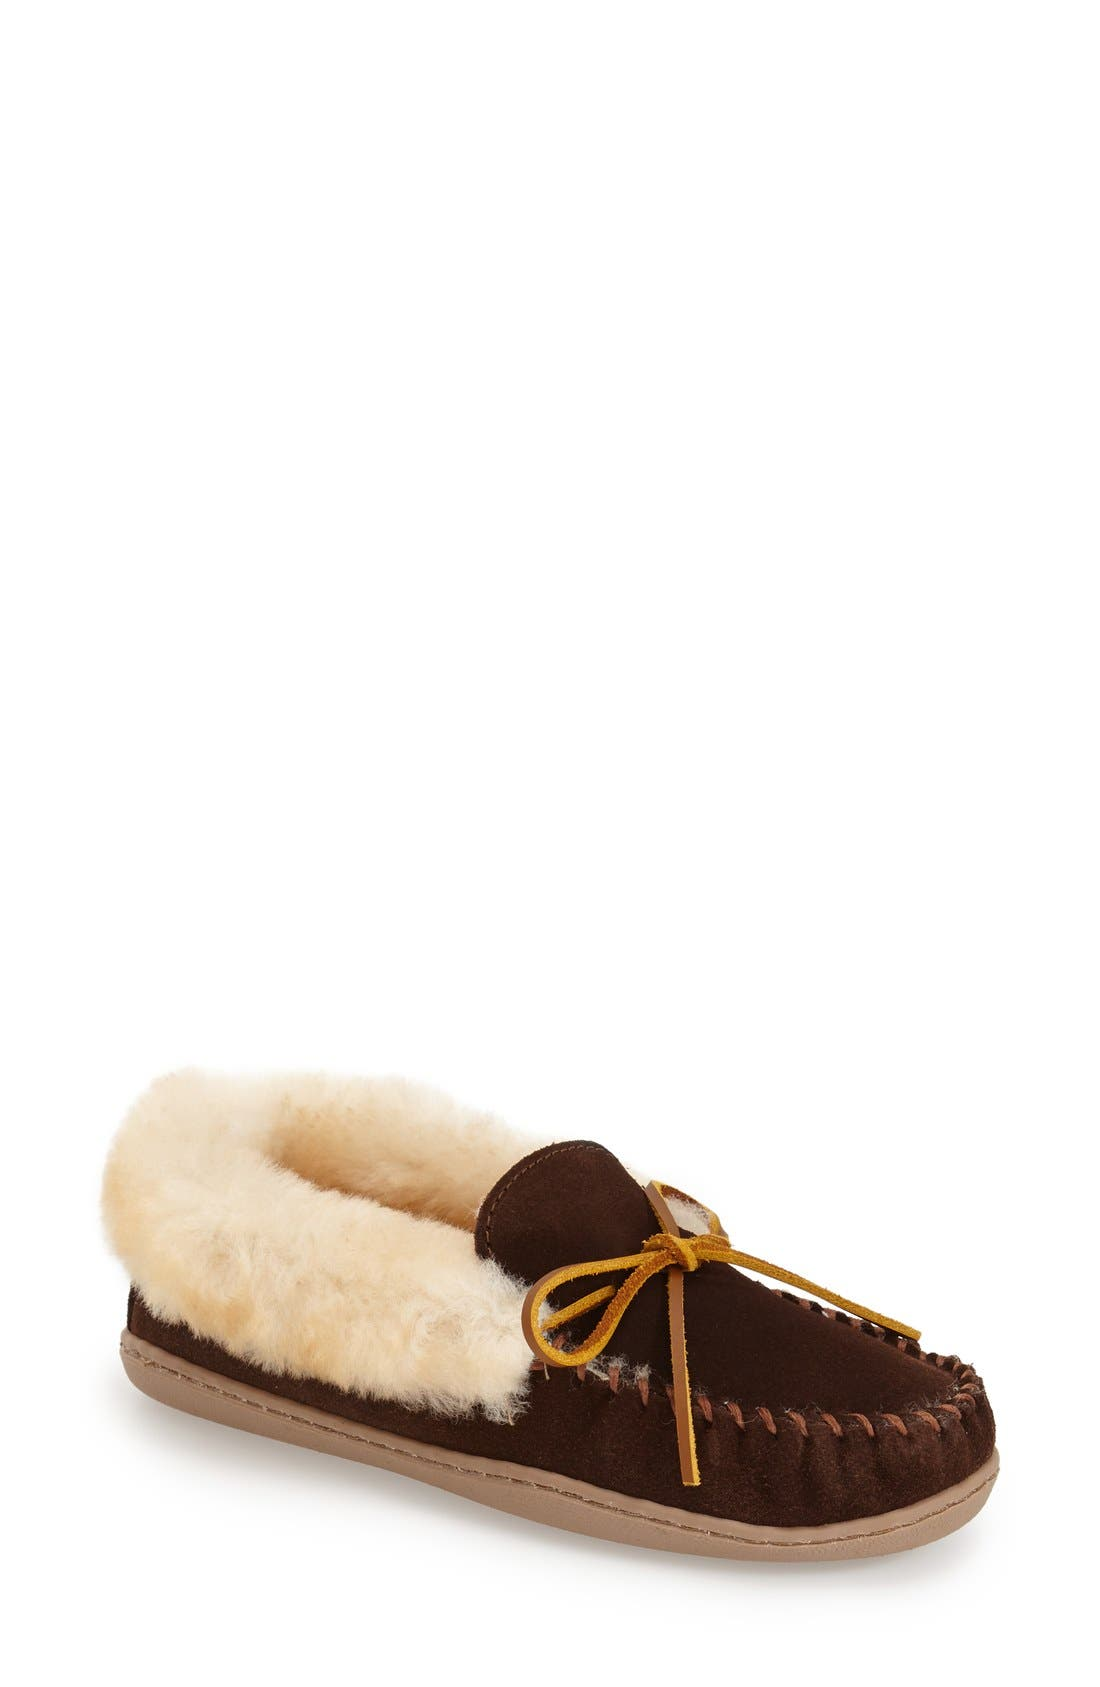 MINNETONKA 'Alpine' Genuine Shearling Moccasin Slipper, Main, color, CHOCOLATE SUEDE